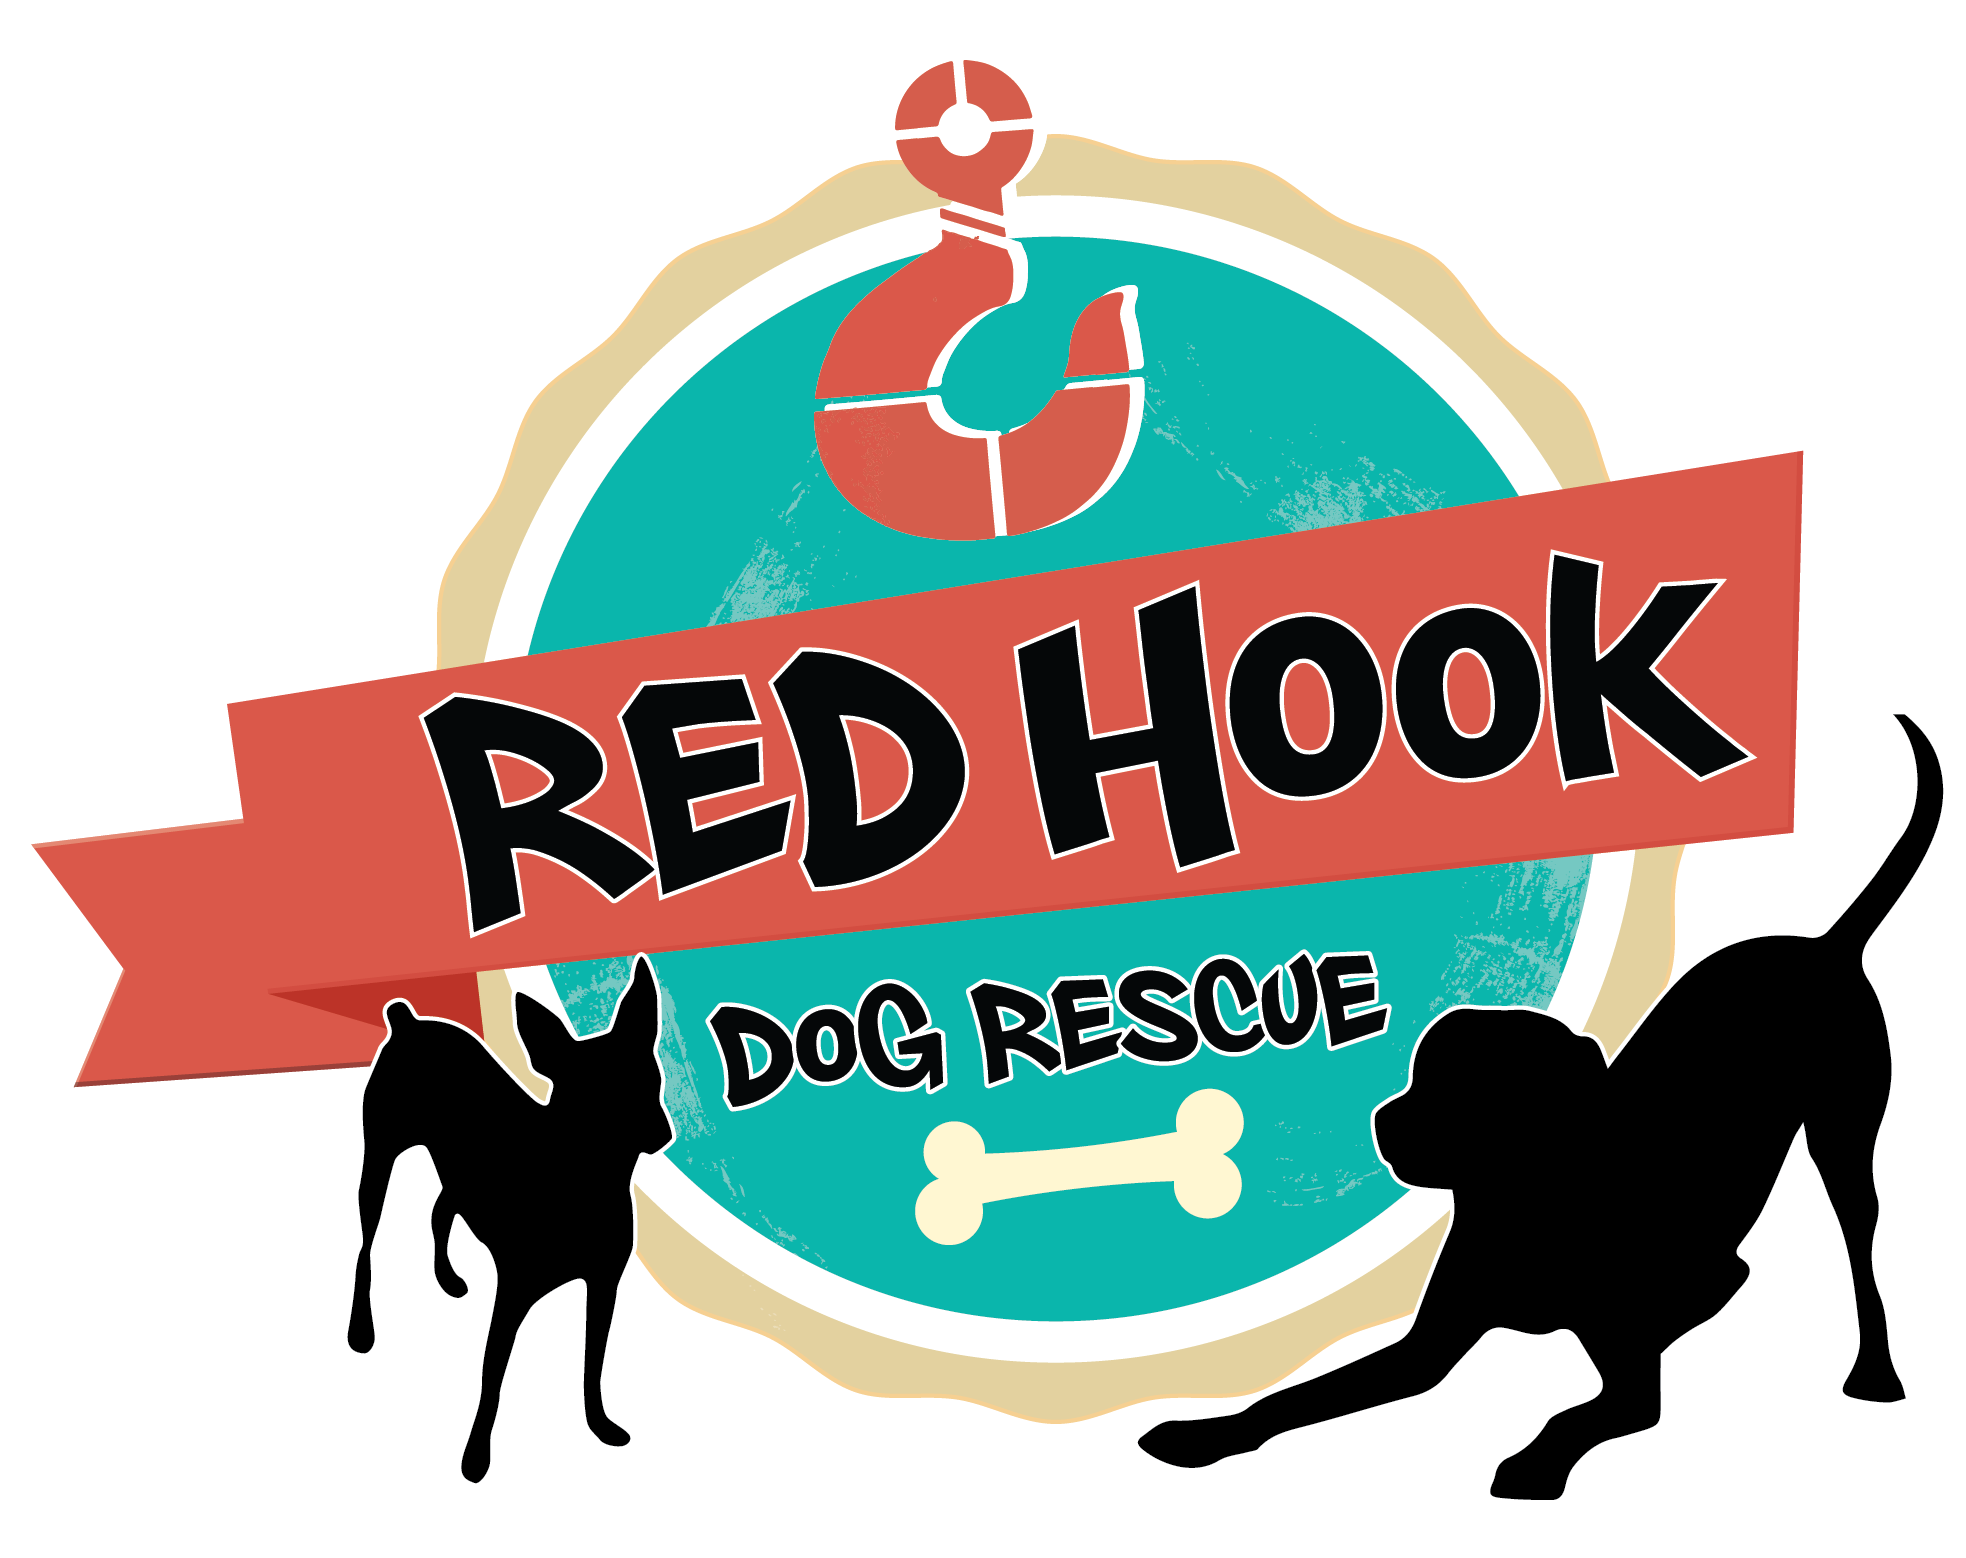 1966x1558 Red Hook Dog Rescue Logo Design Jjj.